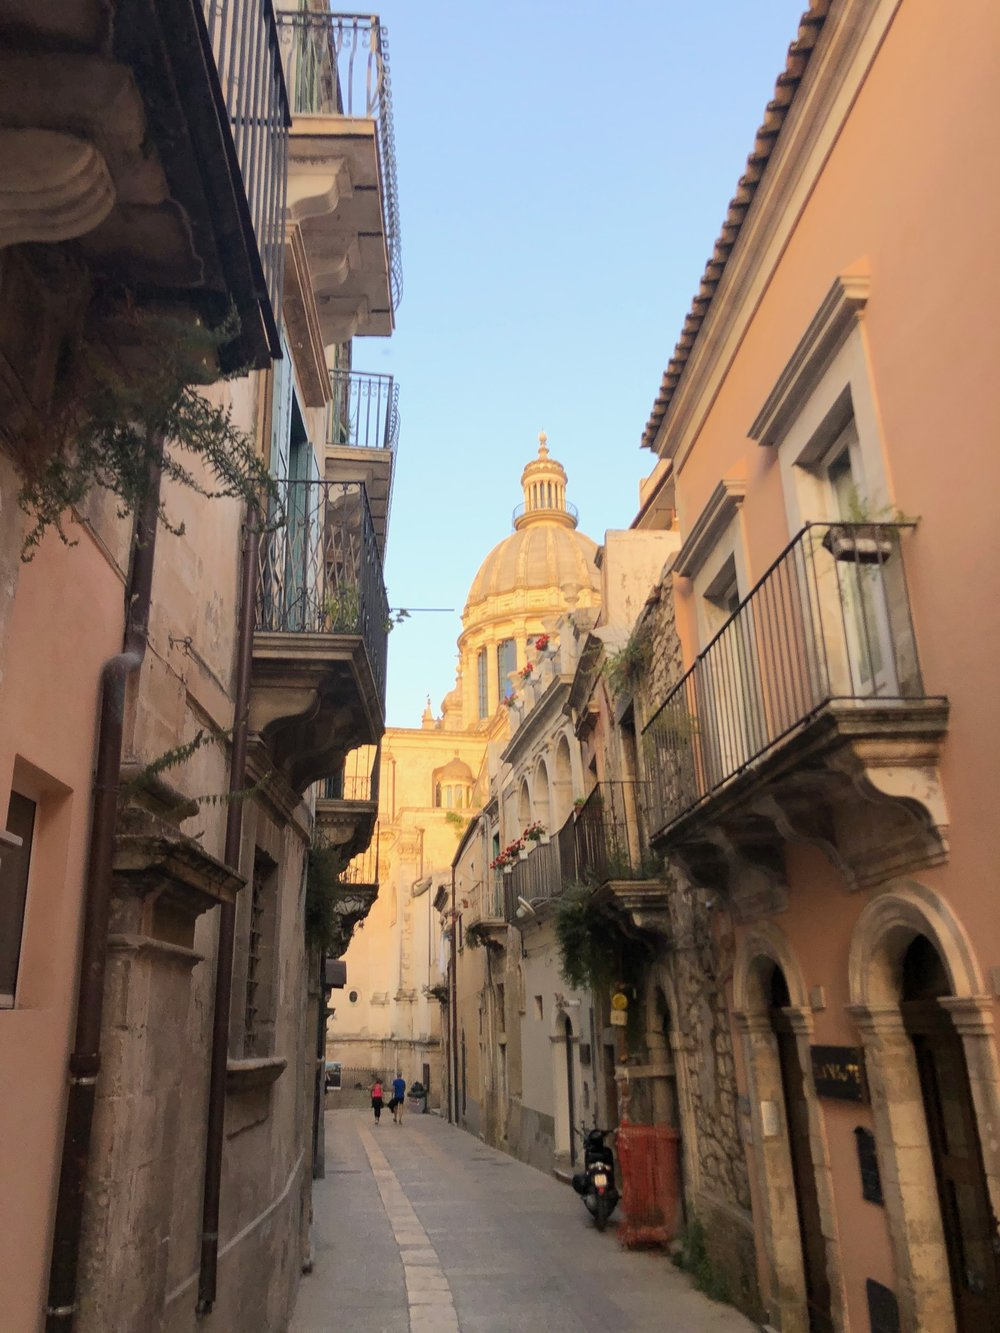 The main cathedral in Ragusa